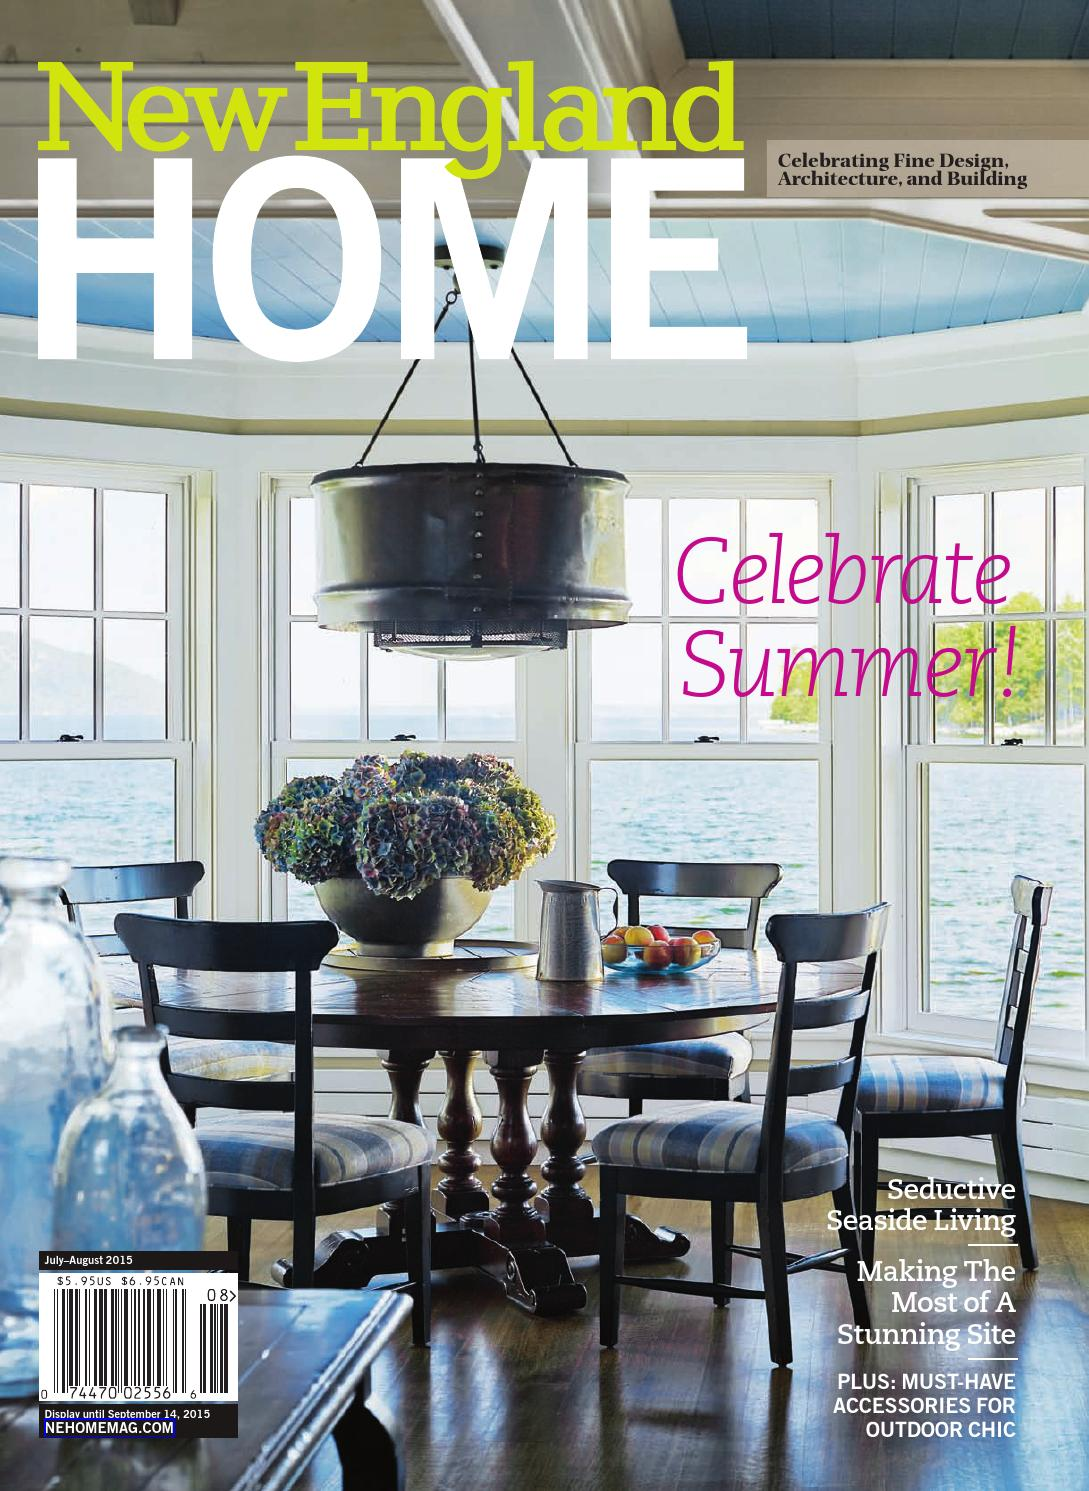 New england home july august 2015 by new england home magazine llc issuu